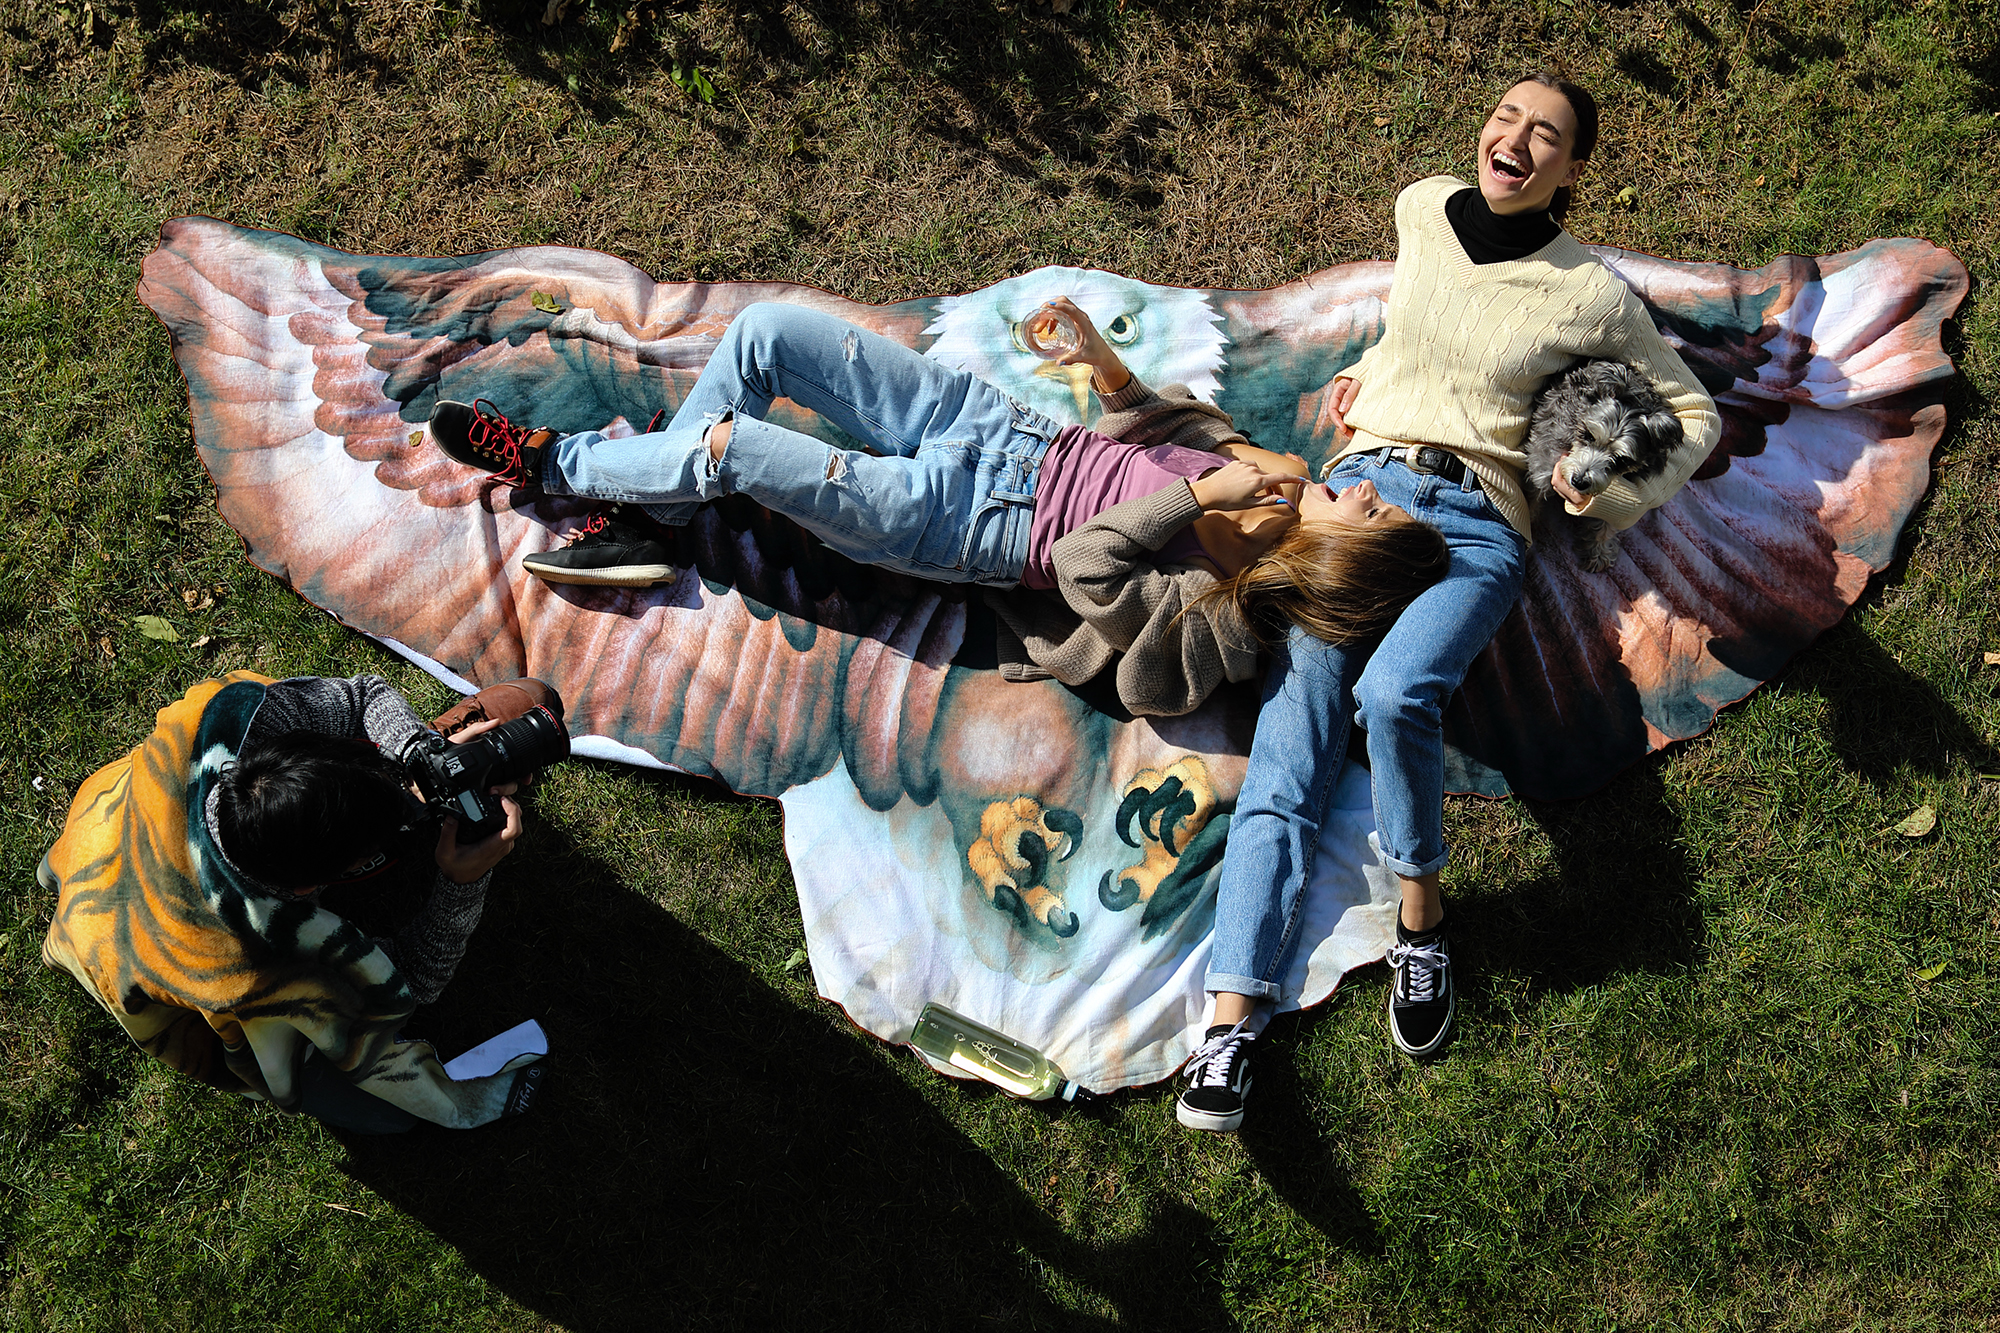 Laylife, towel, octopus, tiger, eagle, spread, blanket, sheet, throw, cotton, environment, dry, thick, watercolor, art, sustainable, animal, donate, dry, lay, decorate, picnic, beach, ocean, graphic, design, print7.jpg